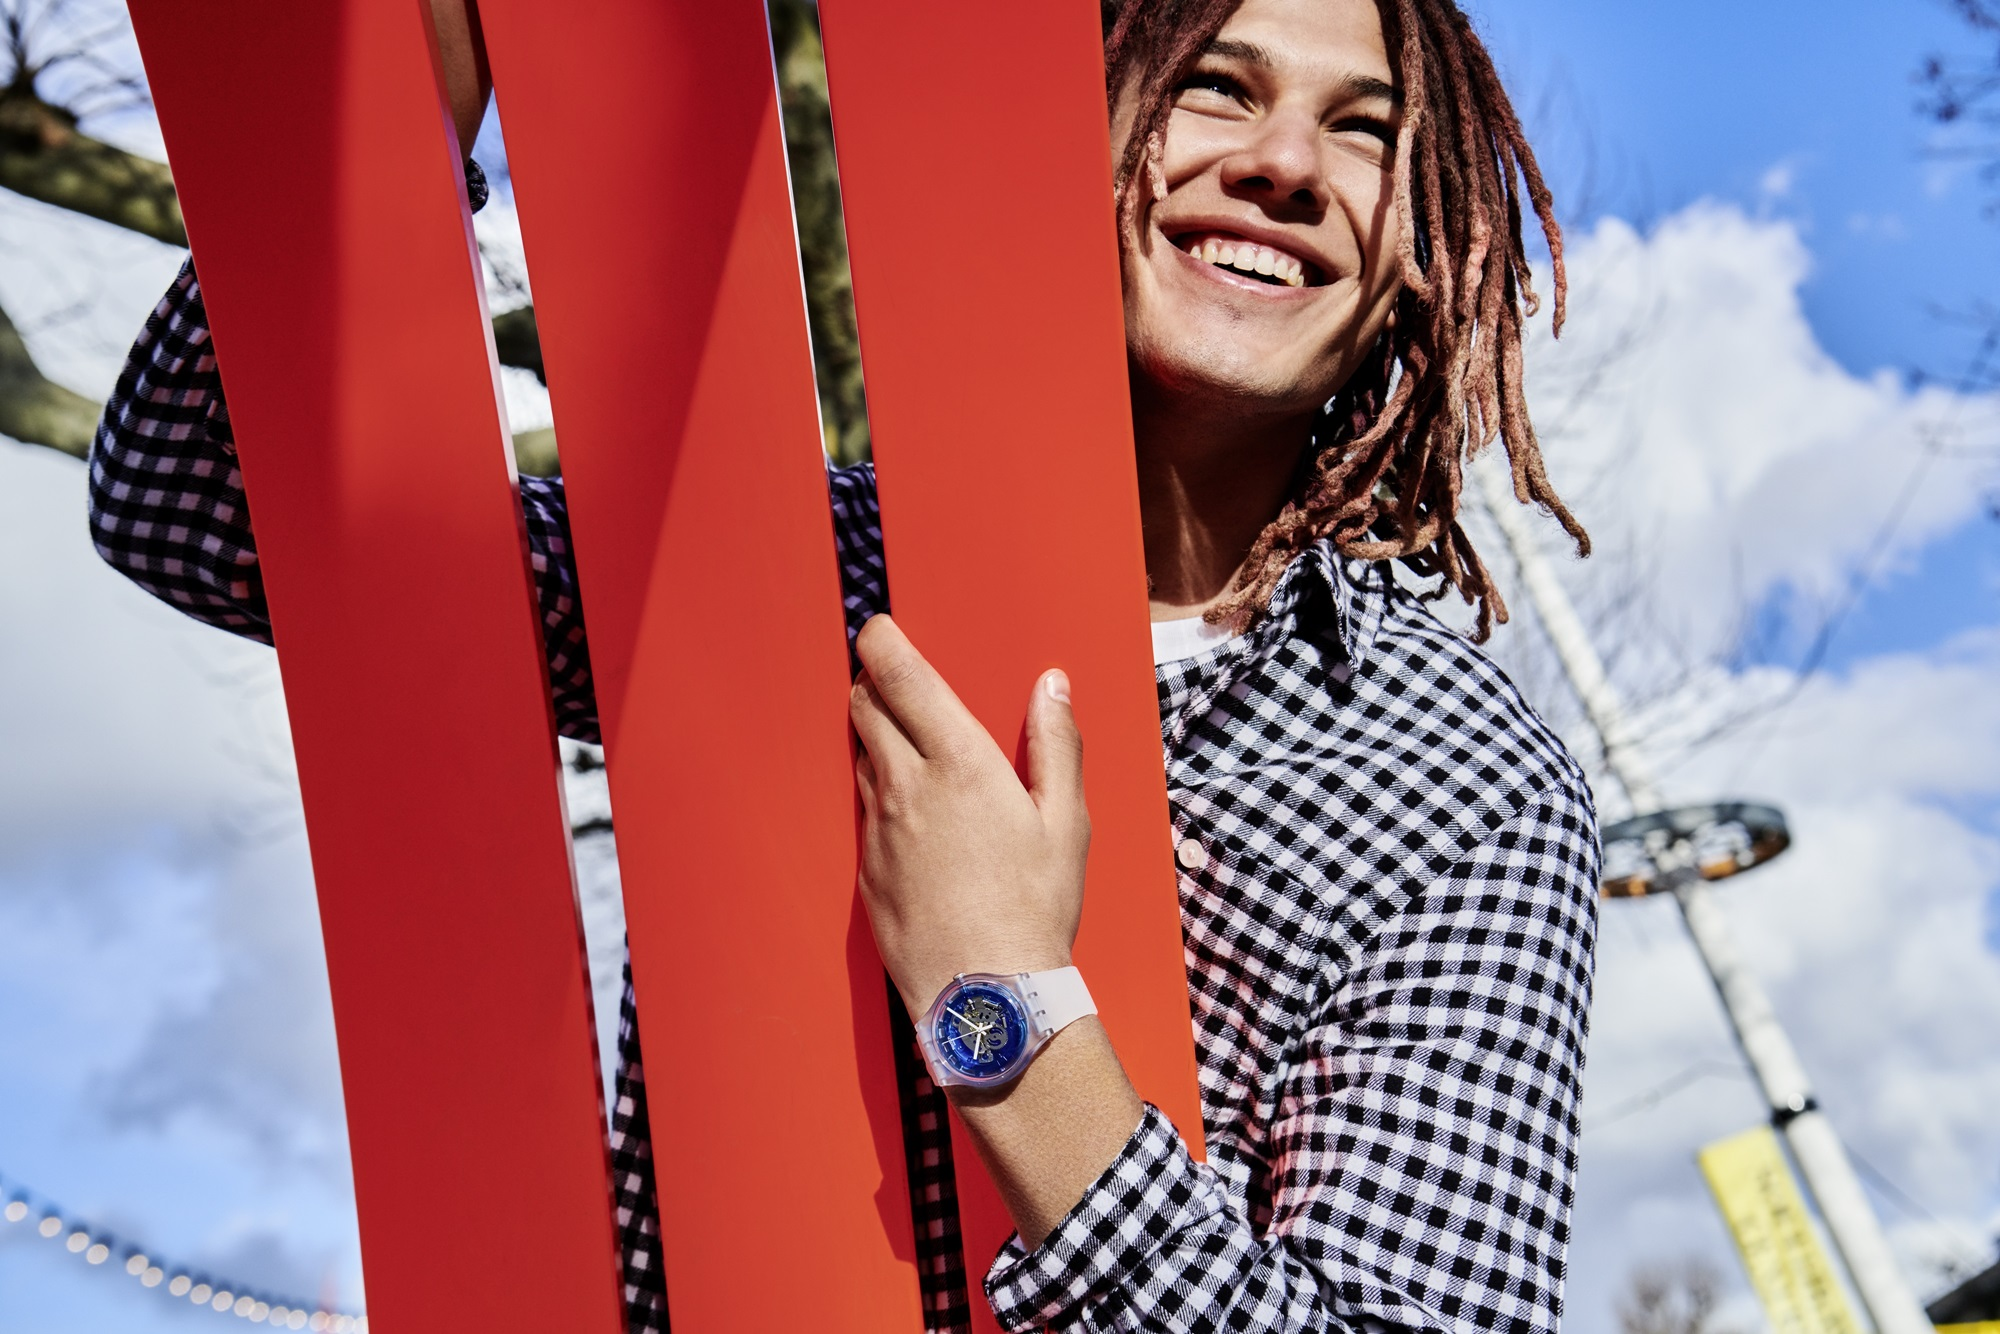 14. The Swatch Vibe Lifestyle Shot